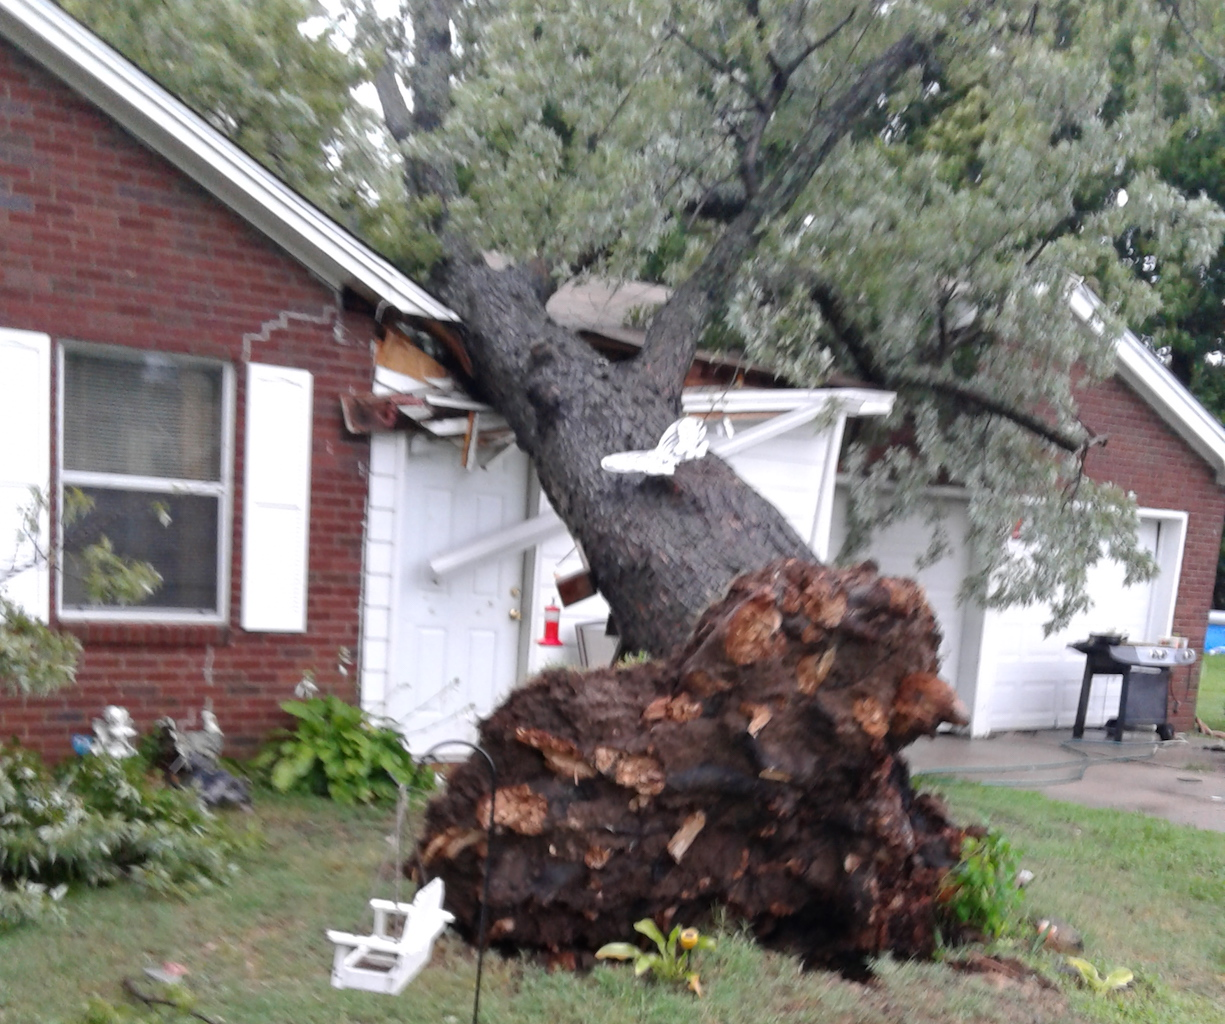 A tree took out part of a house's roof on North K Street by Irving School.